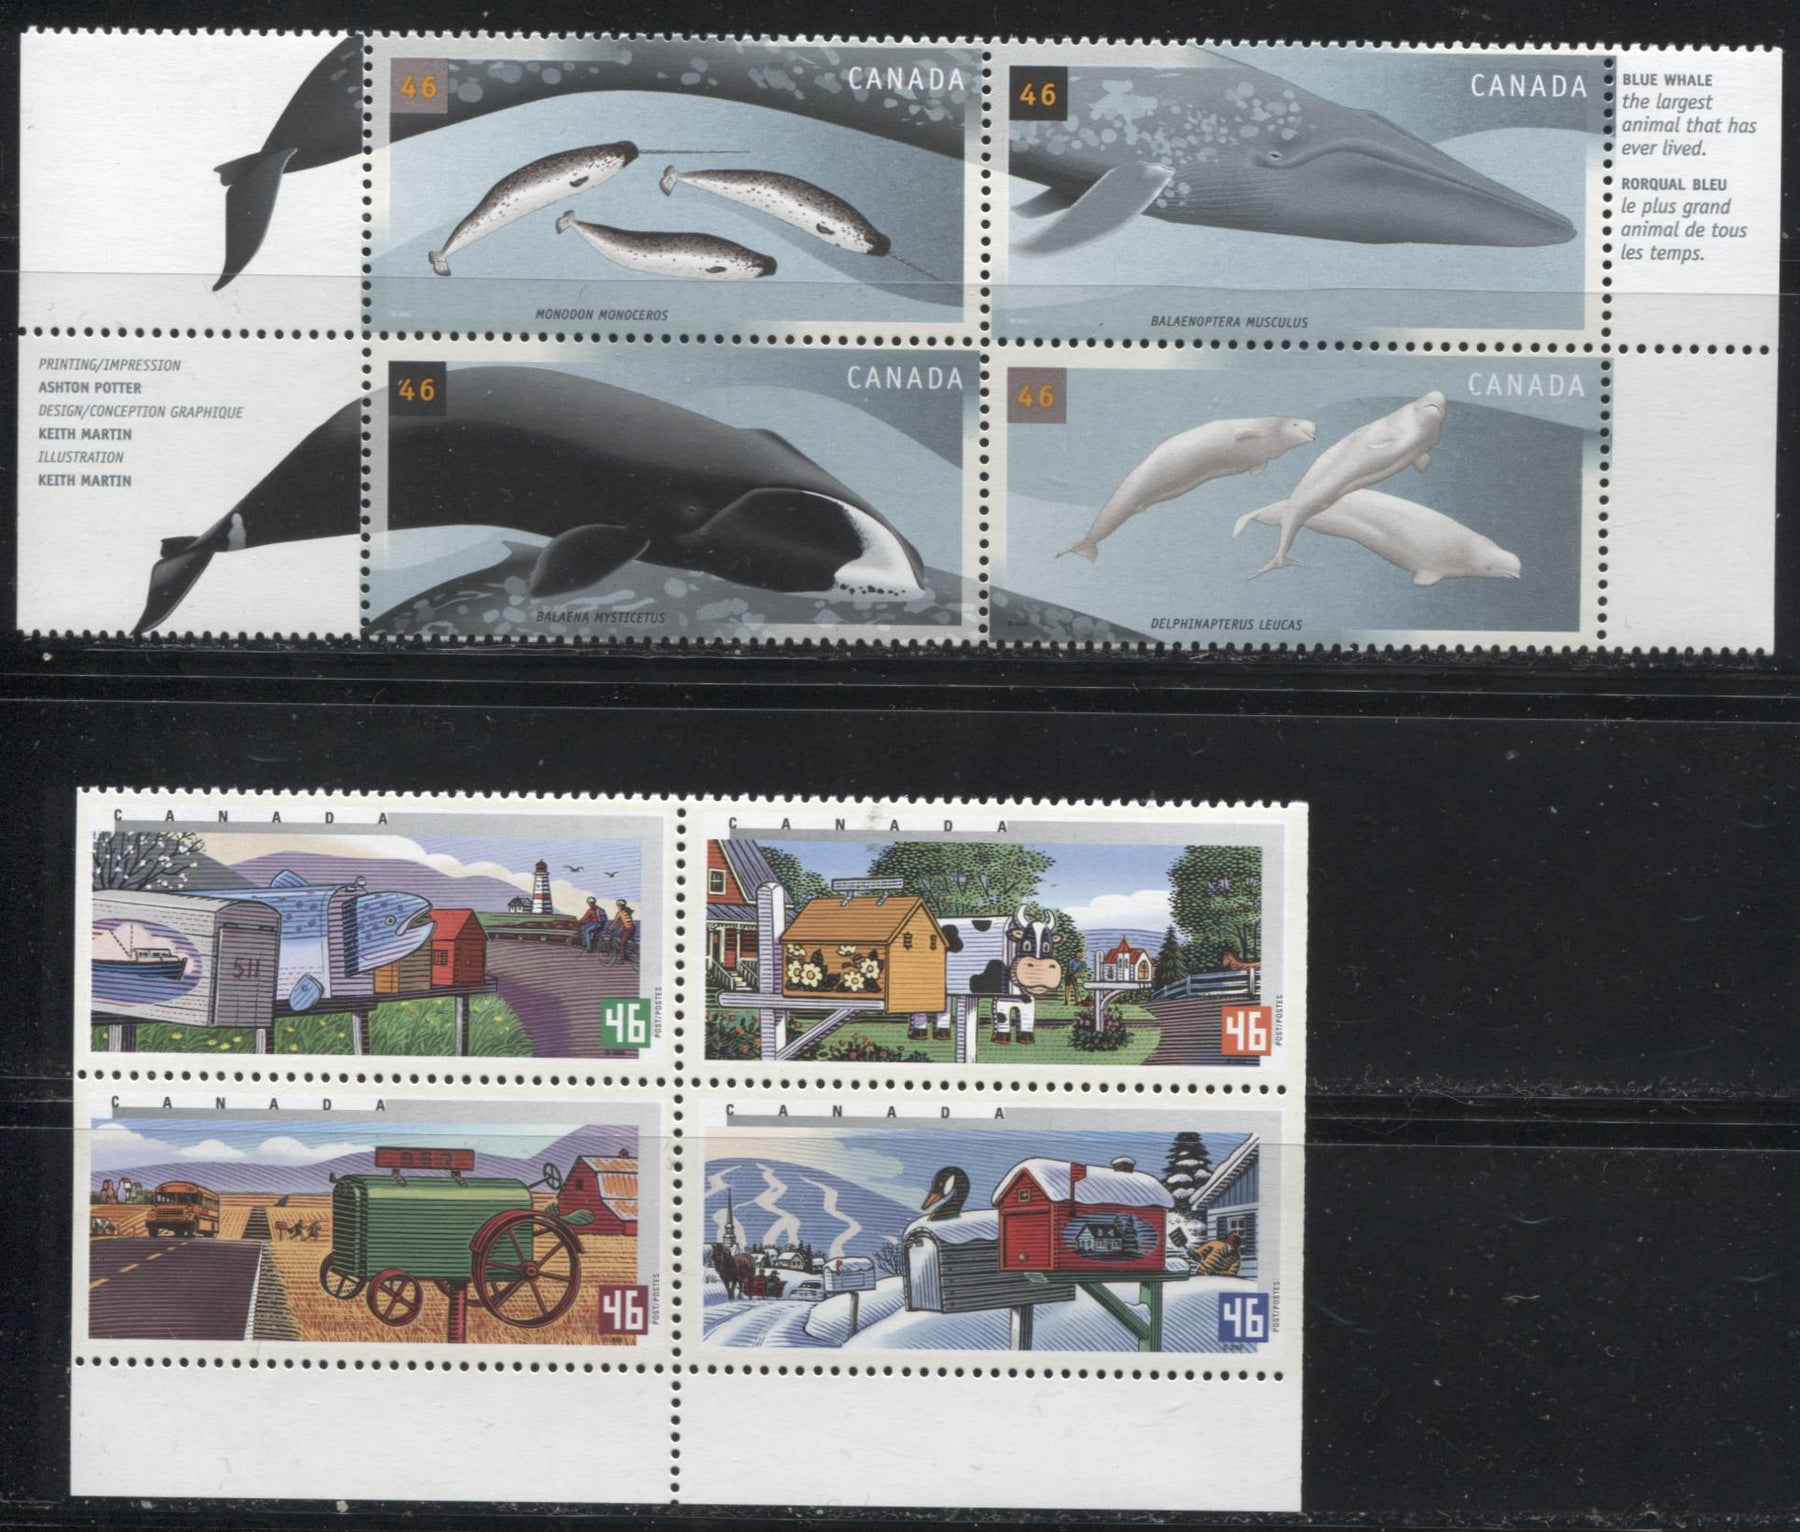 Canada #1852a,1871a 46c Multicolored, 2000 Rural Mailboxes and Whales Issues, 2 VFNH Examples of Blocks of 4 Stamps